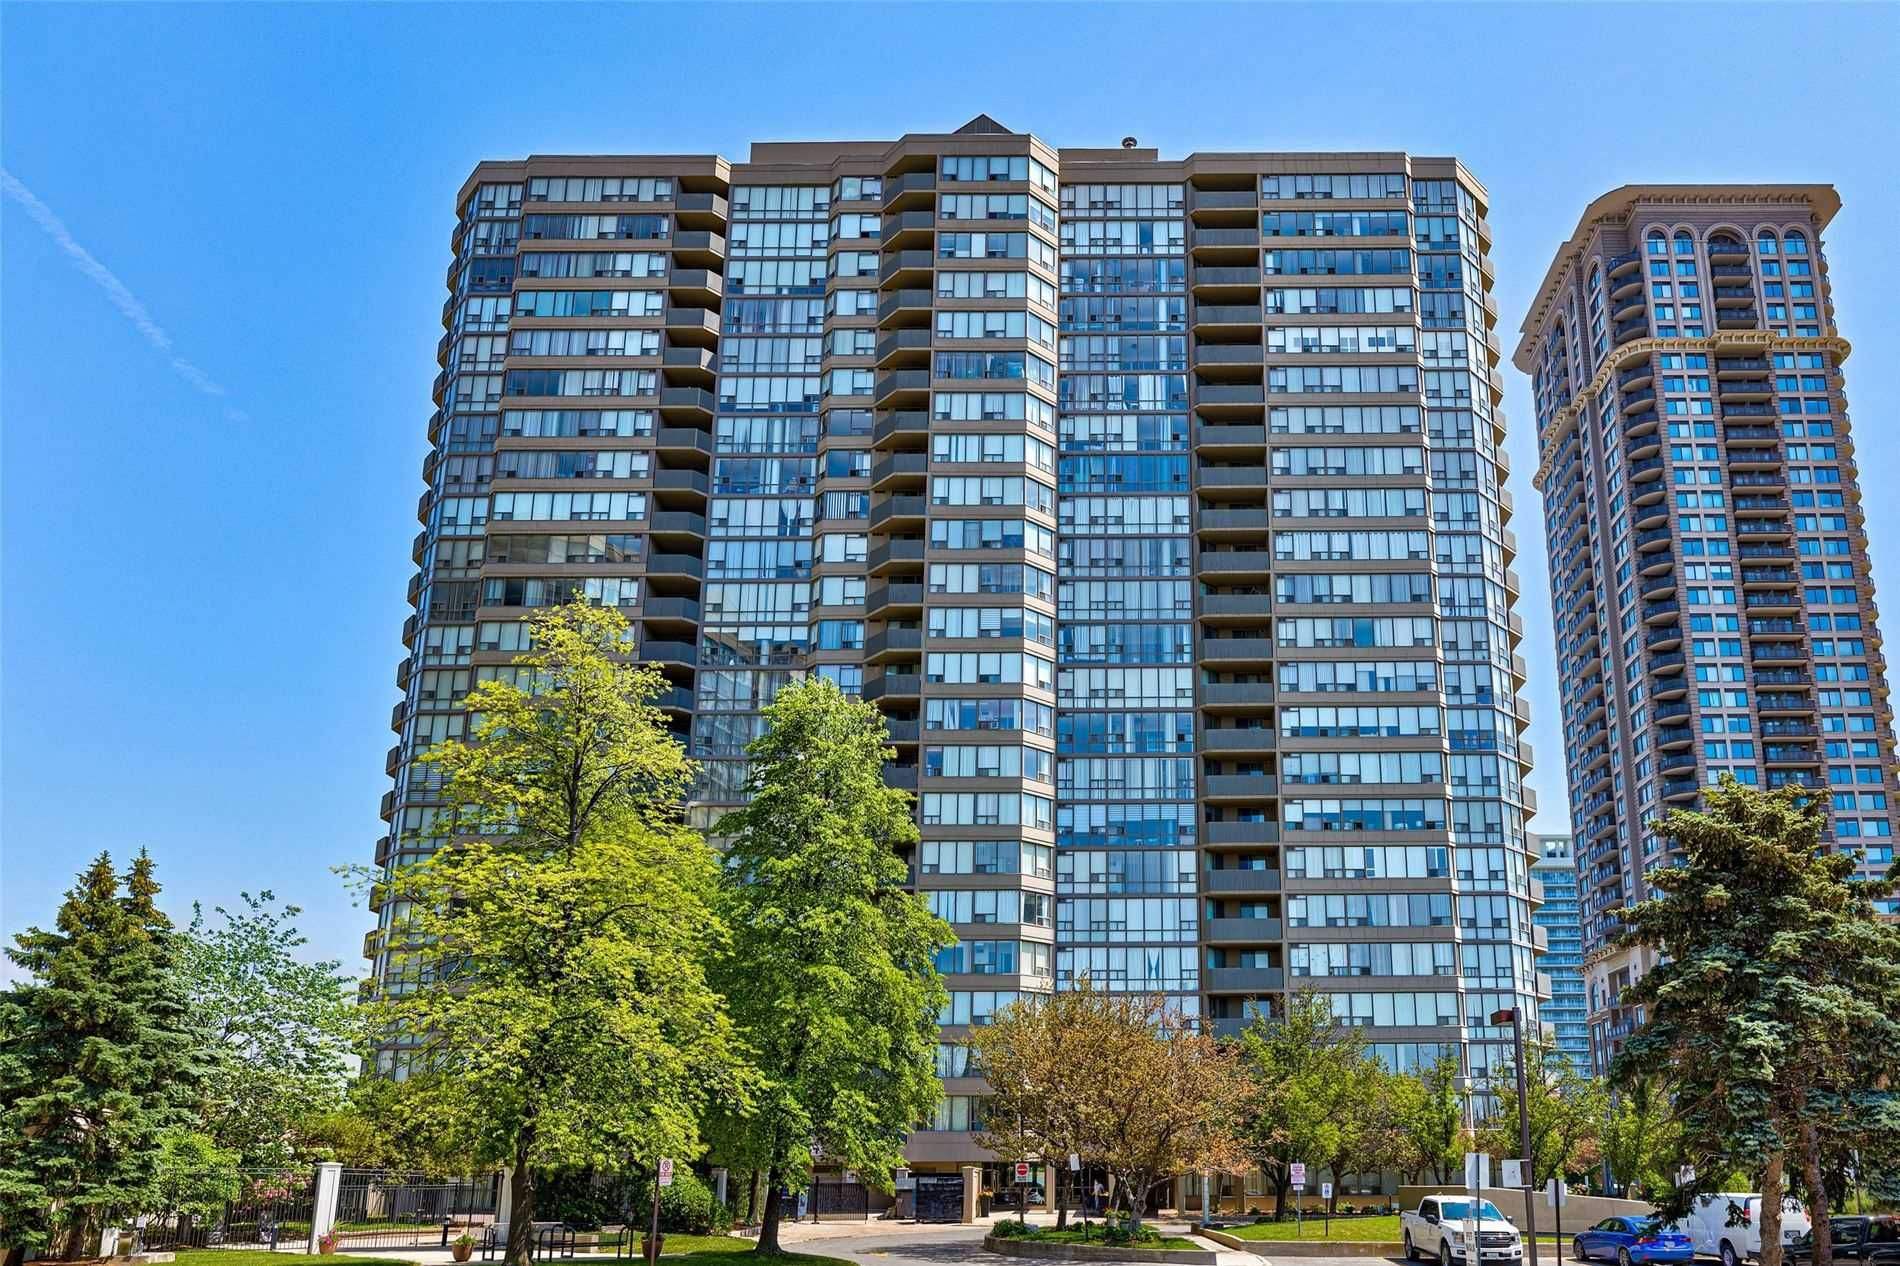 330 Rathburn Rd W, unit 401 for sale in Toronto - image #1